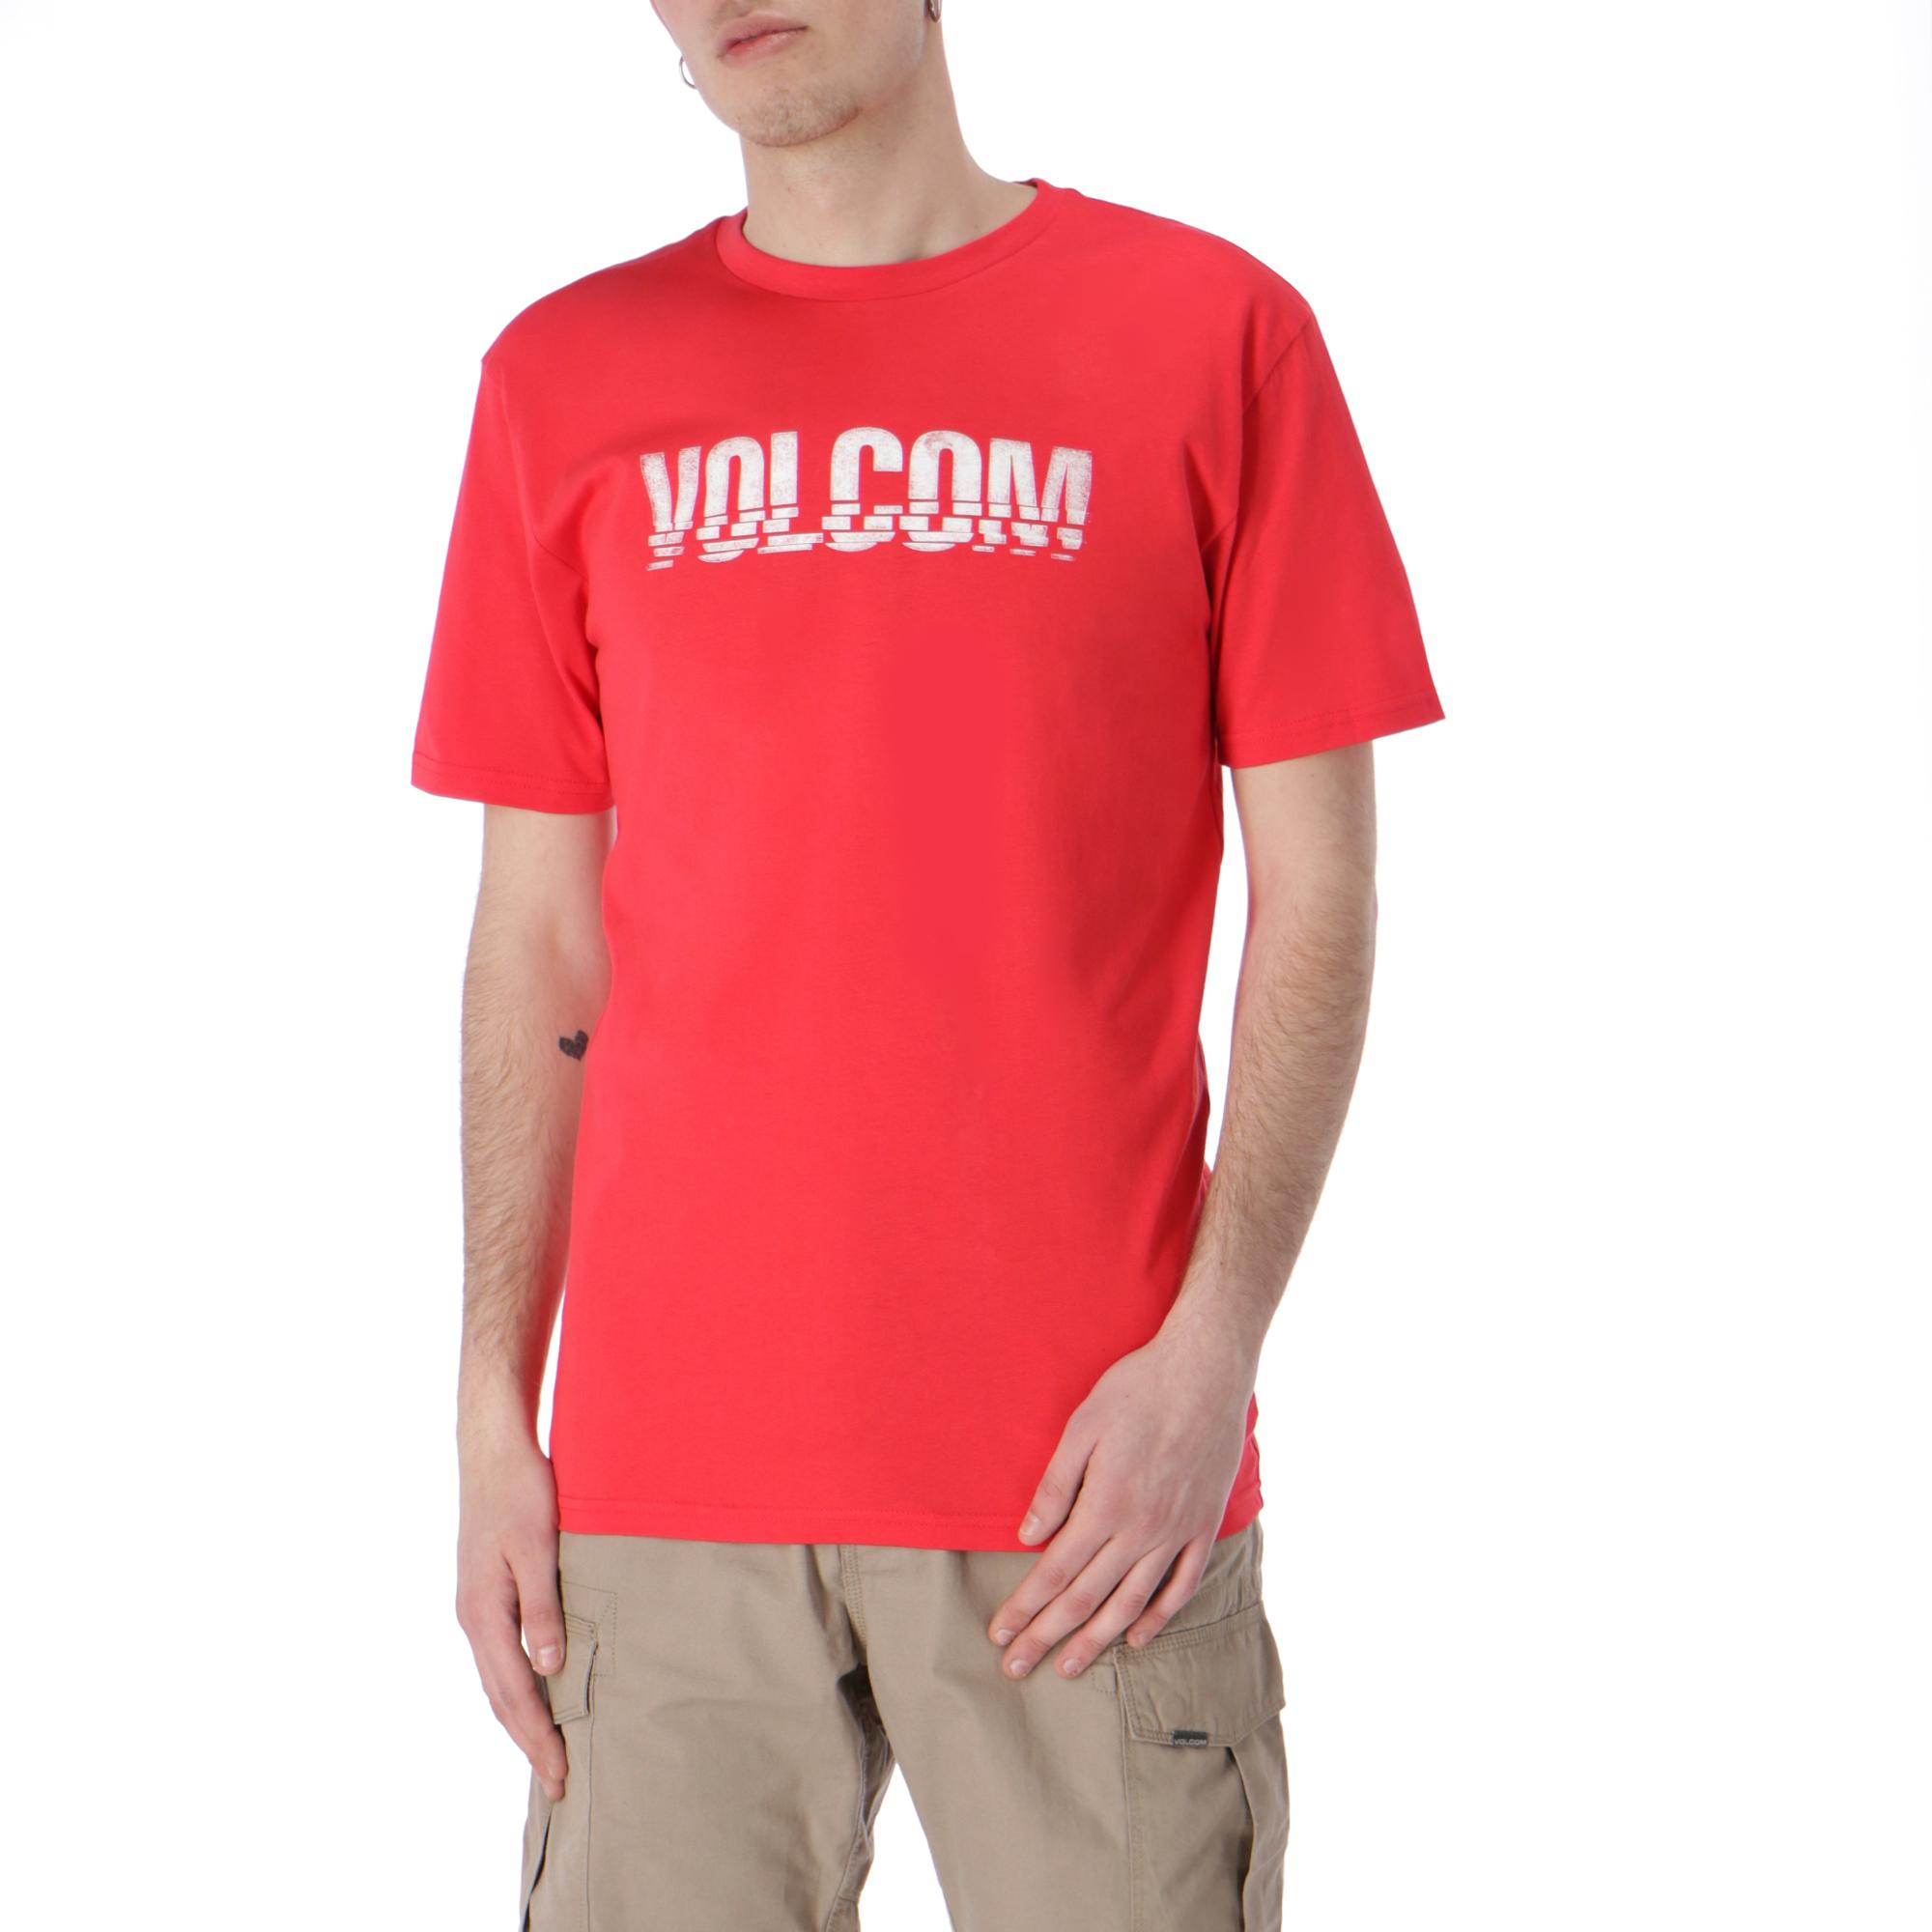 c0ef7557 Volcom Chopped Edge Basic Tee True Red | Treesse